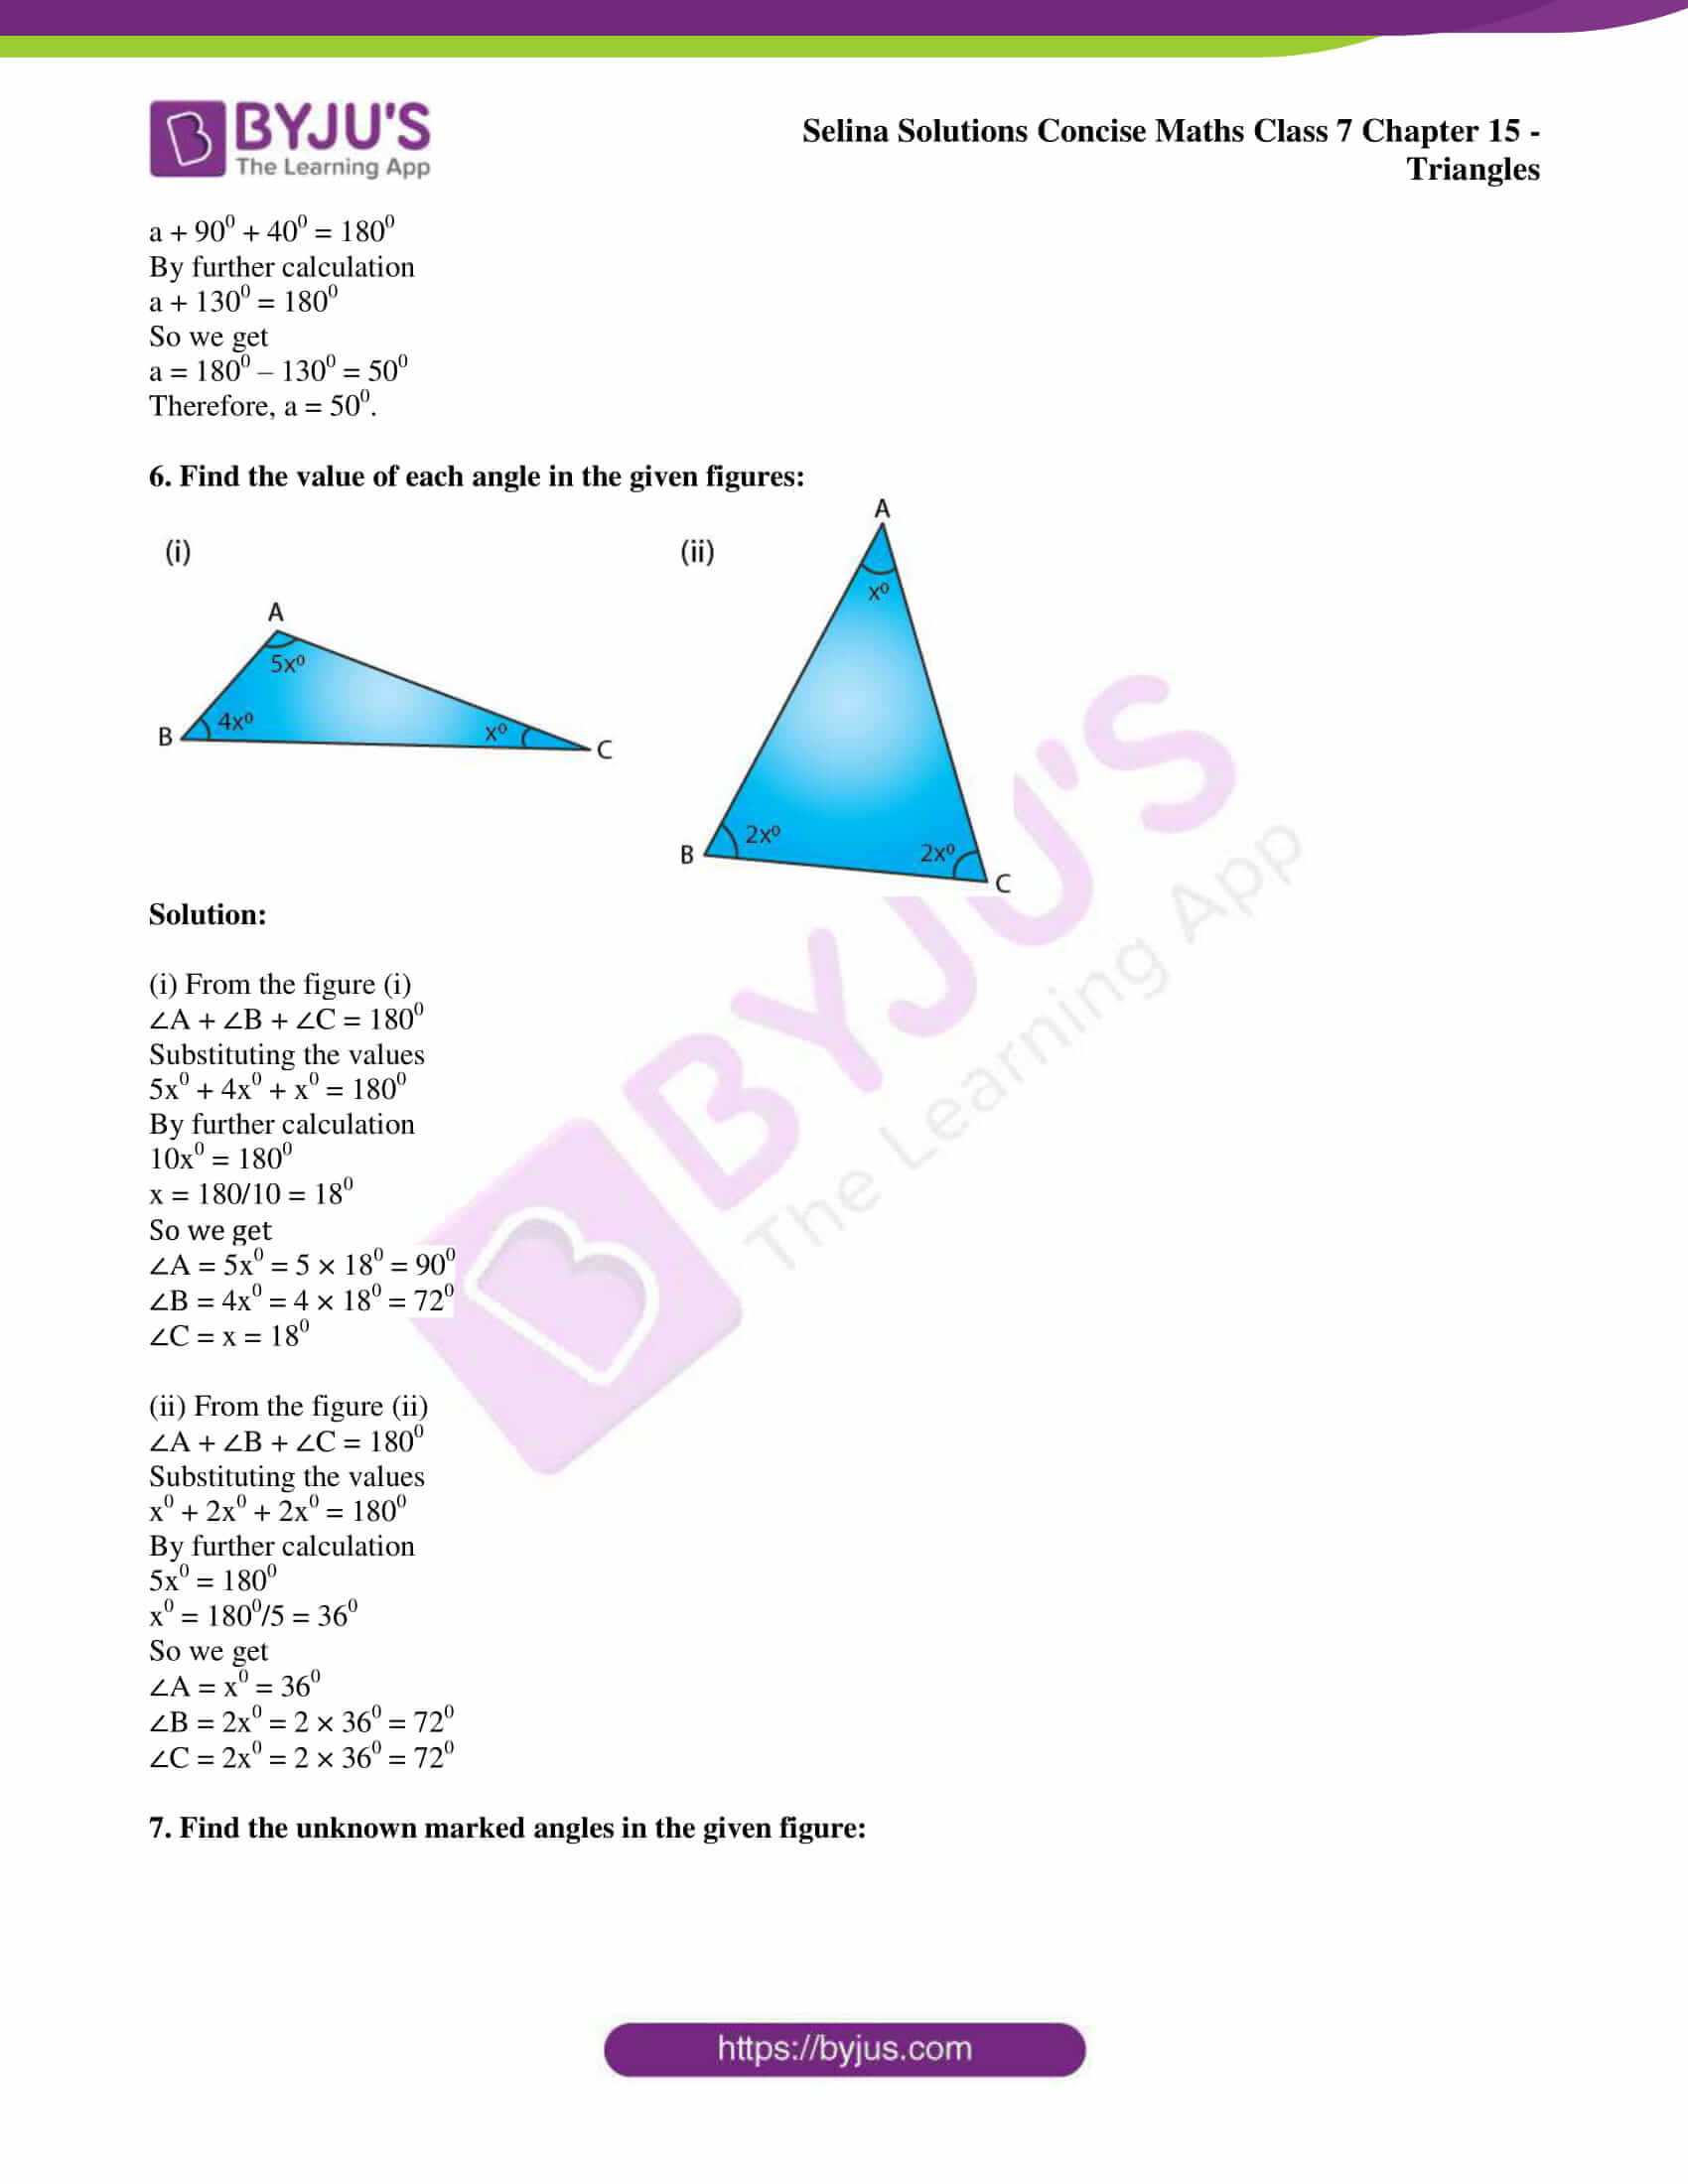 selina sol concise maths class 7 chapter 15 ex a 3